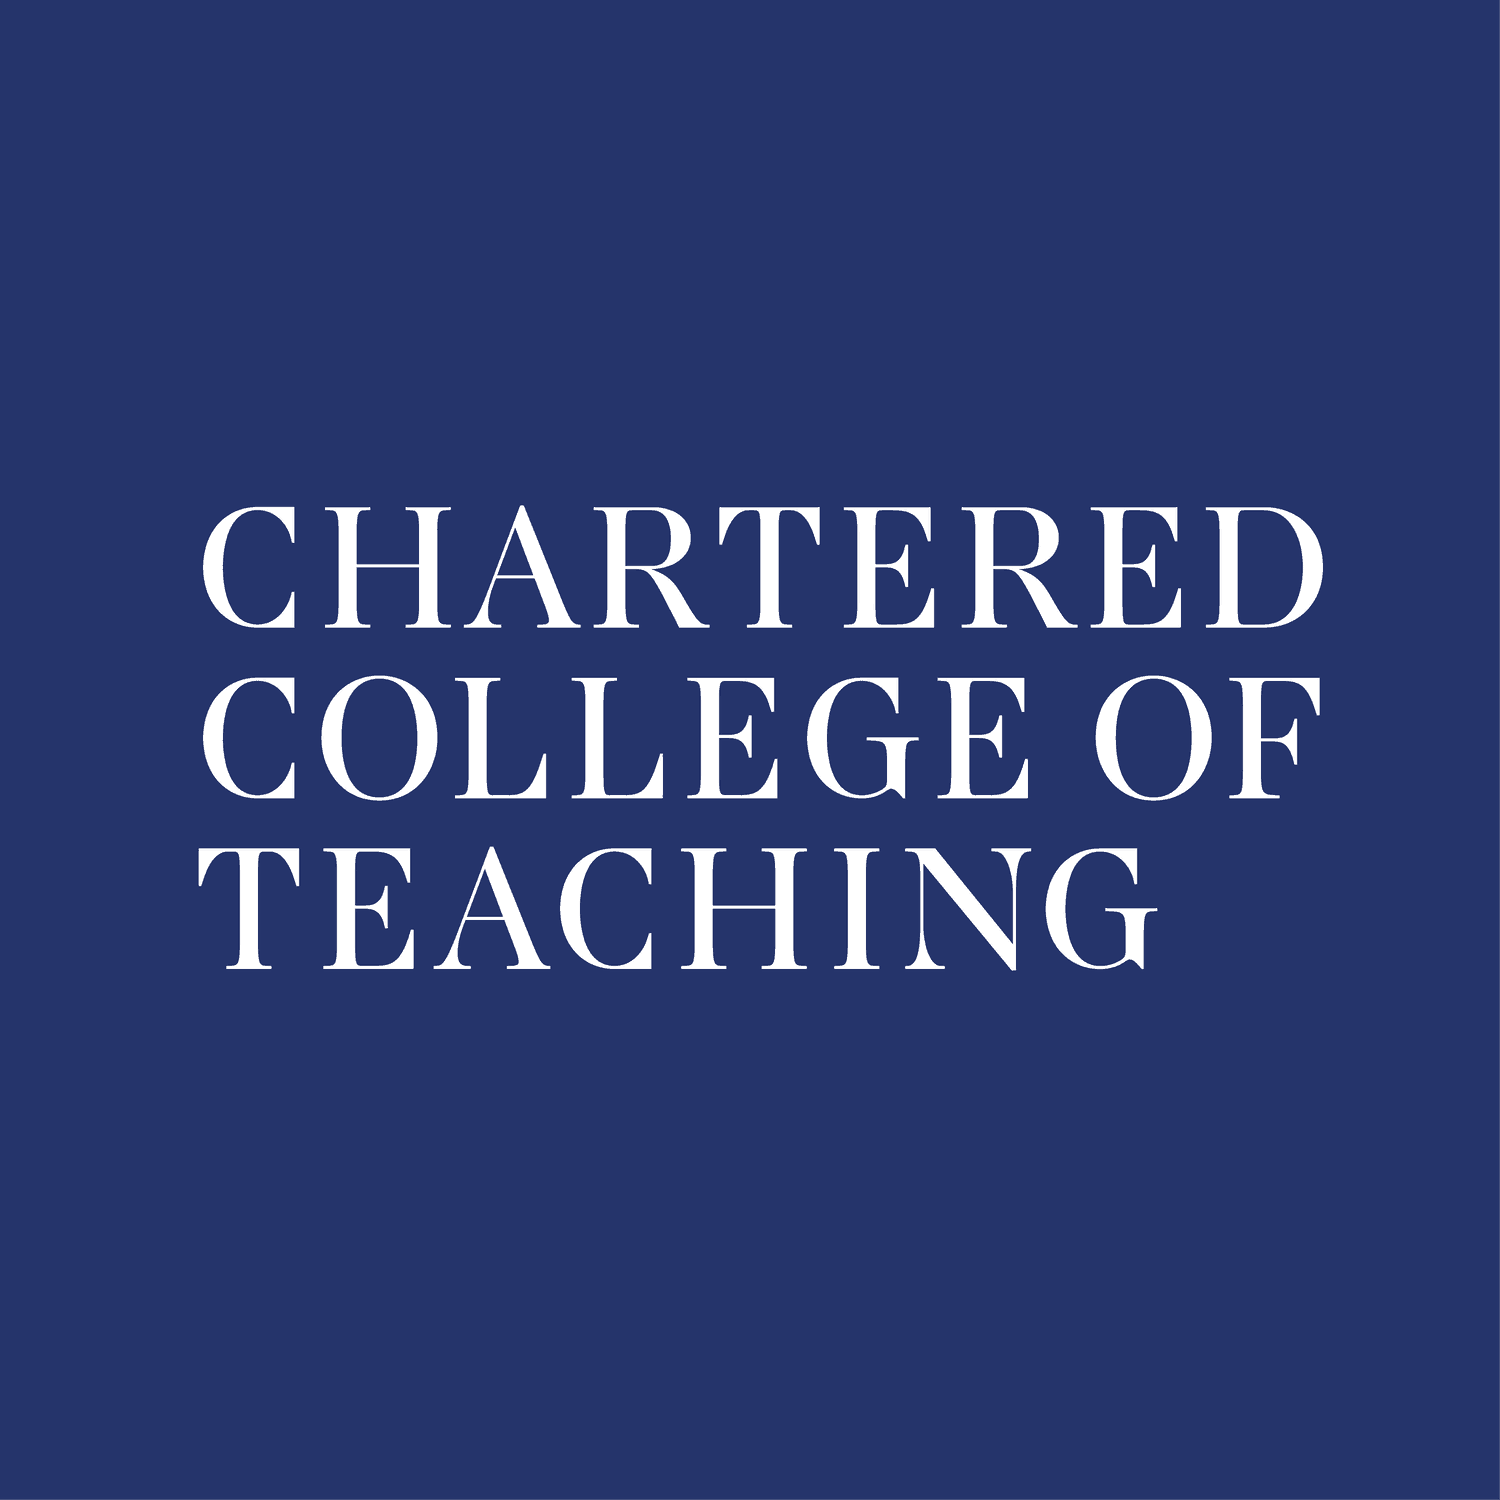 Chartered College of Teaching Elections